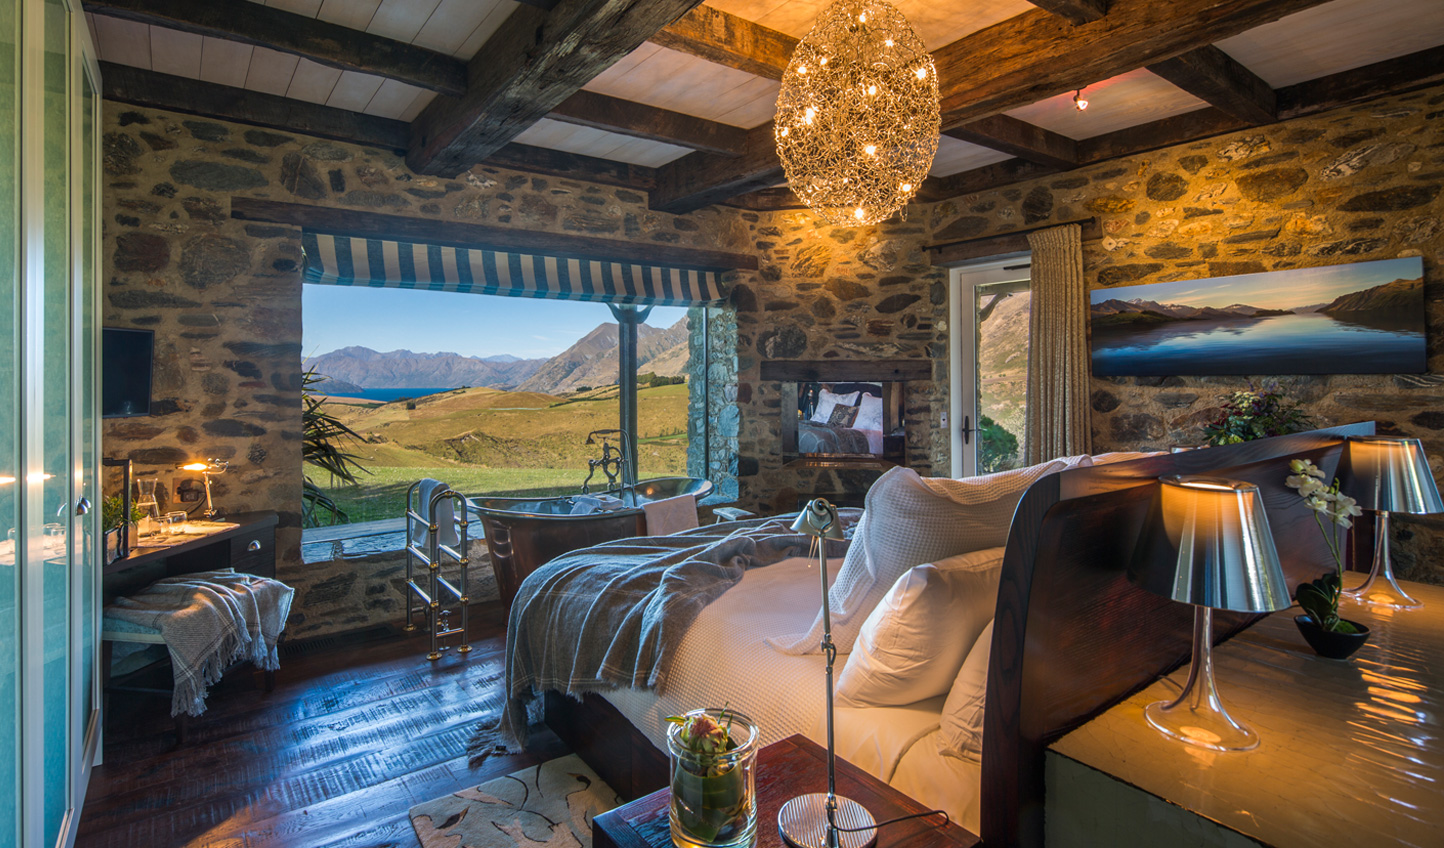 The master suite of dreams with panoramic views of New Zealand's countryside